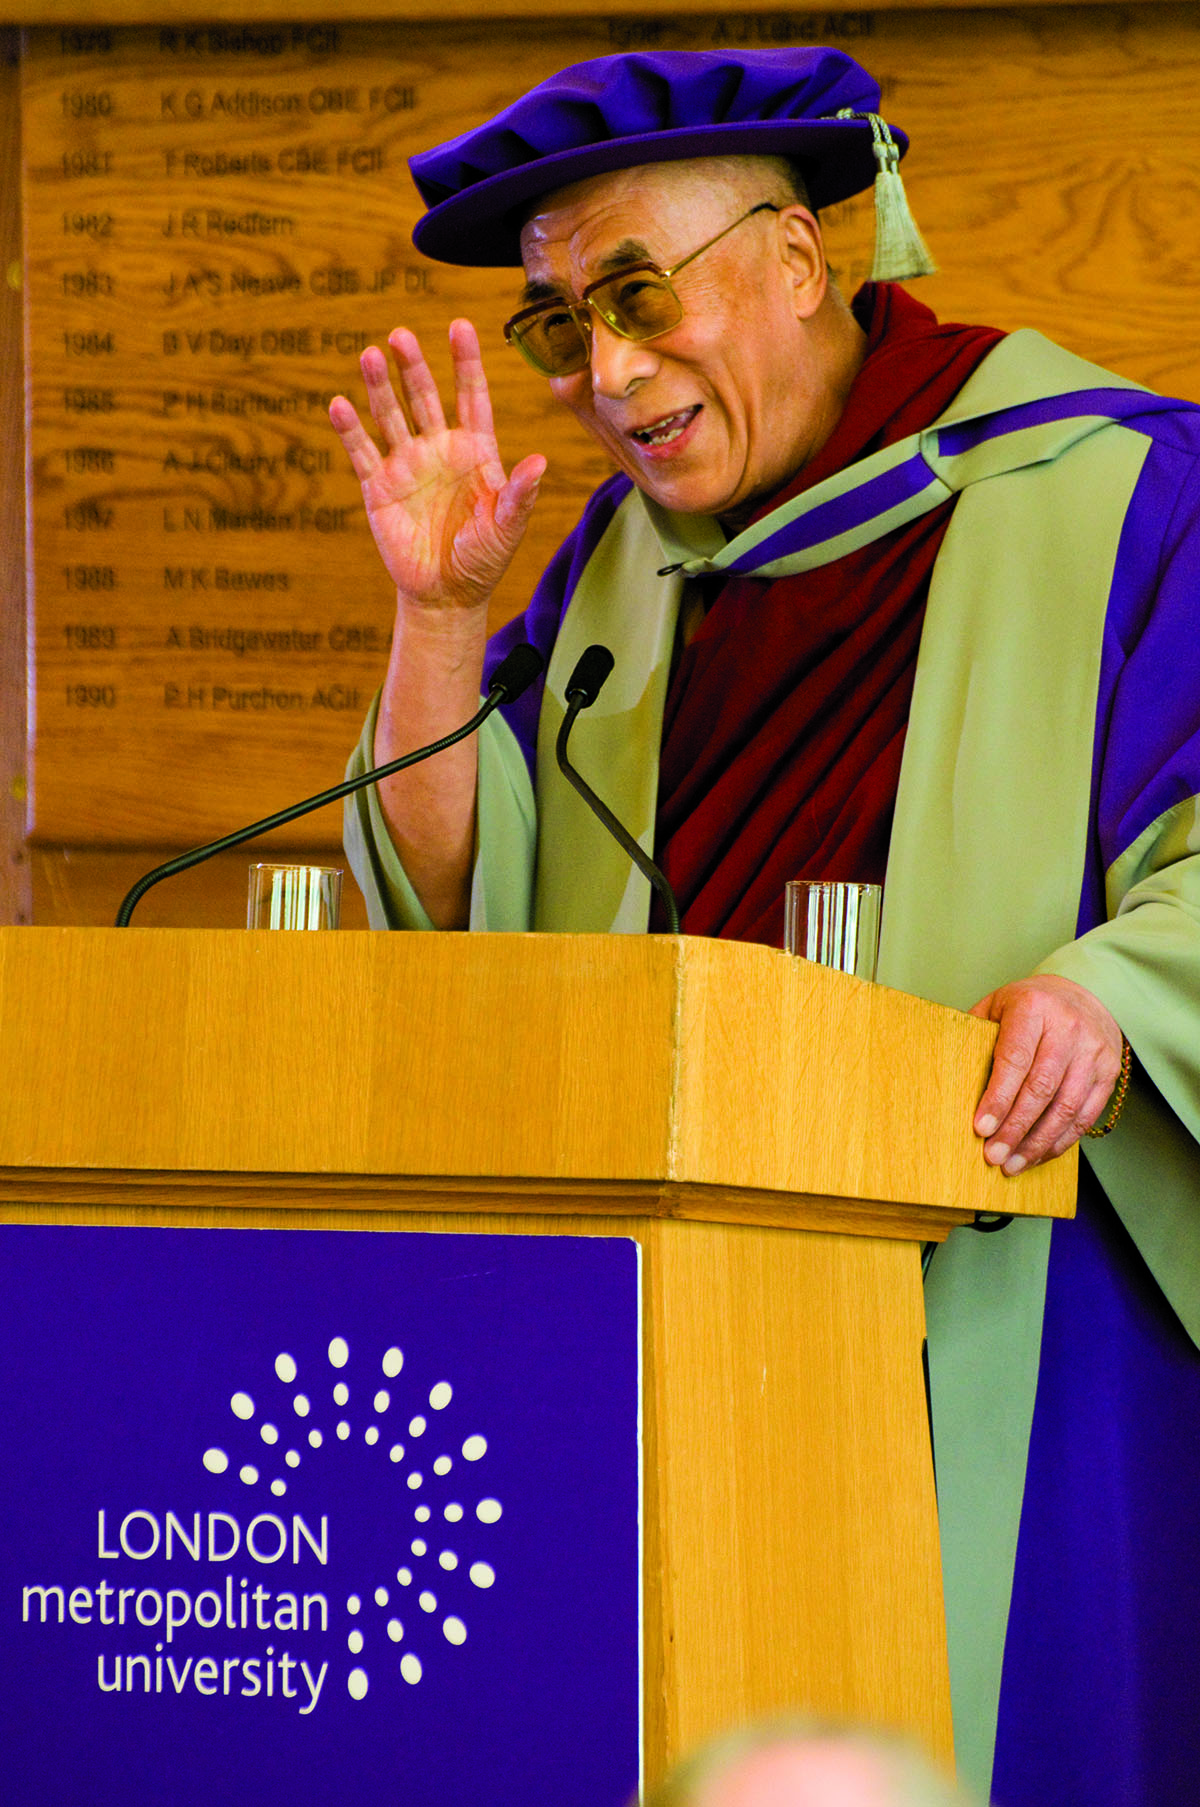 His Holiness the Dalai Lama delivering the acceptance speech after receiving an Honorary Doctorate from London Metropolitan University, UK, 21 May 2008